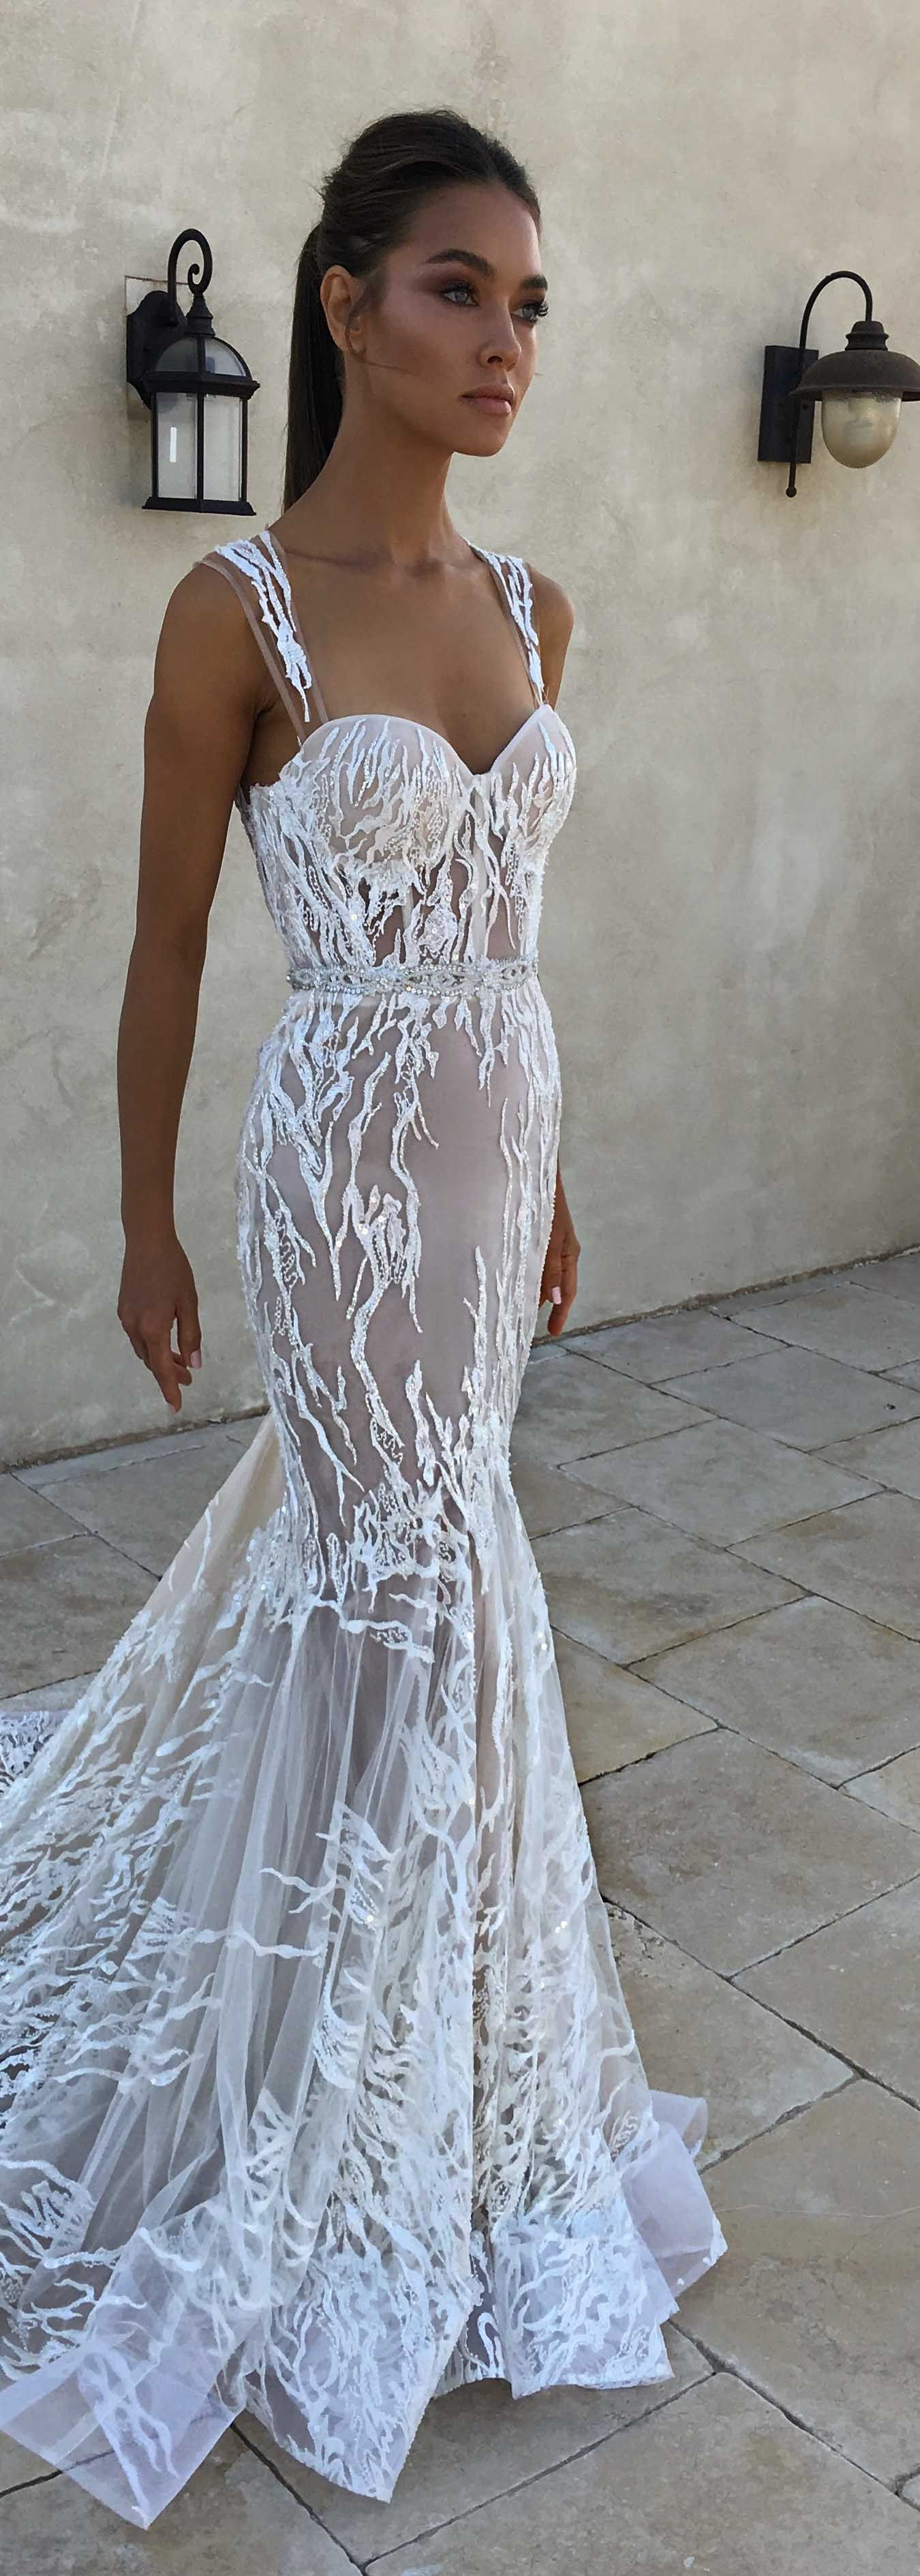 Wedding dress with color  Really really extraordinary wedding dress color and lace  For